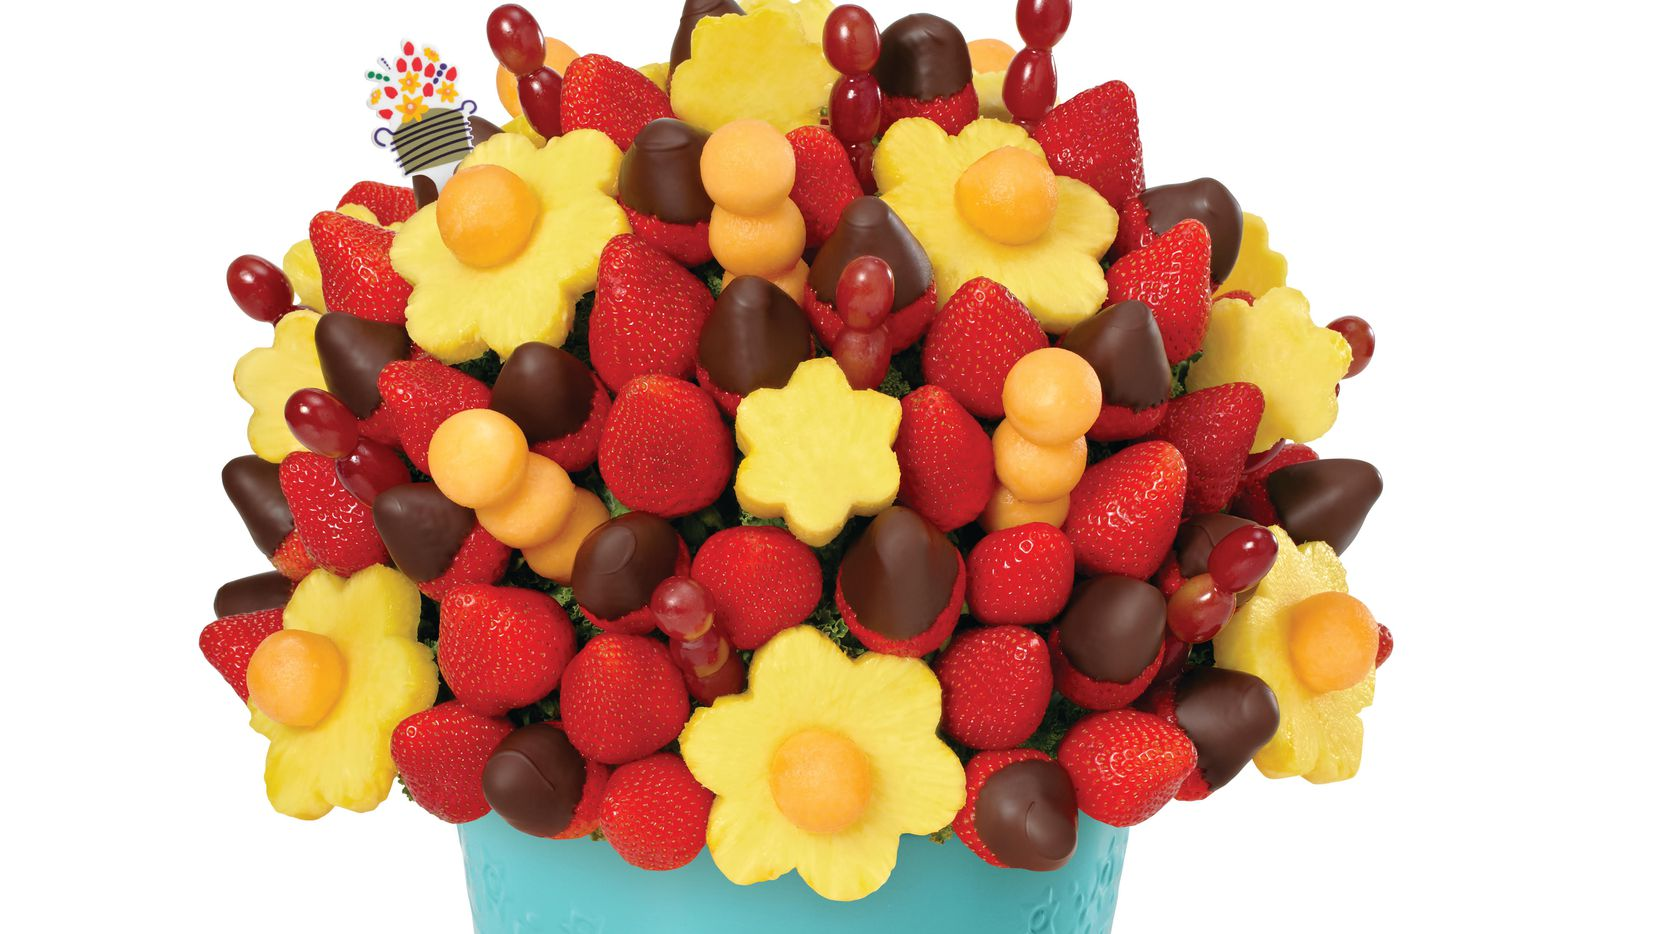 When most people think of Edible Arrangements, they think of these colorful fruit baskets. The company is now dabbling in CBD-infused fruit and smoothies. Dallas customers can already buy them.